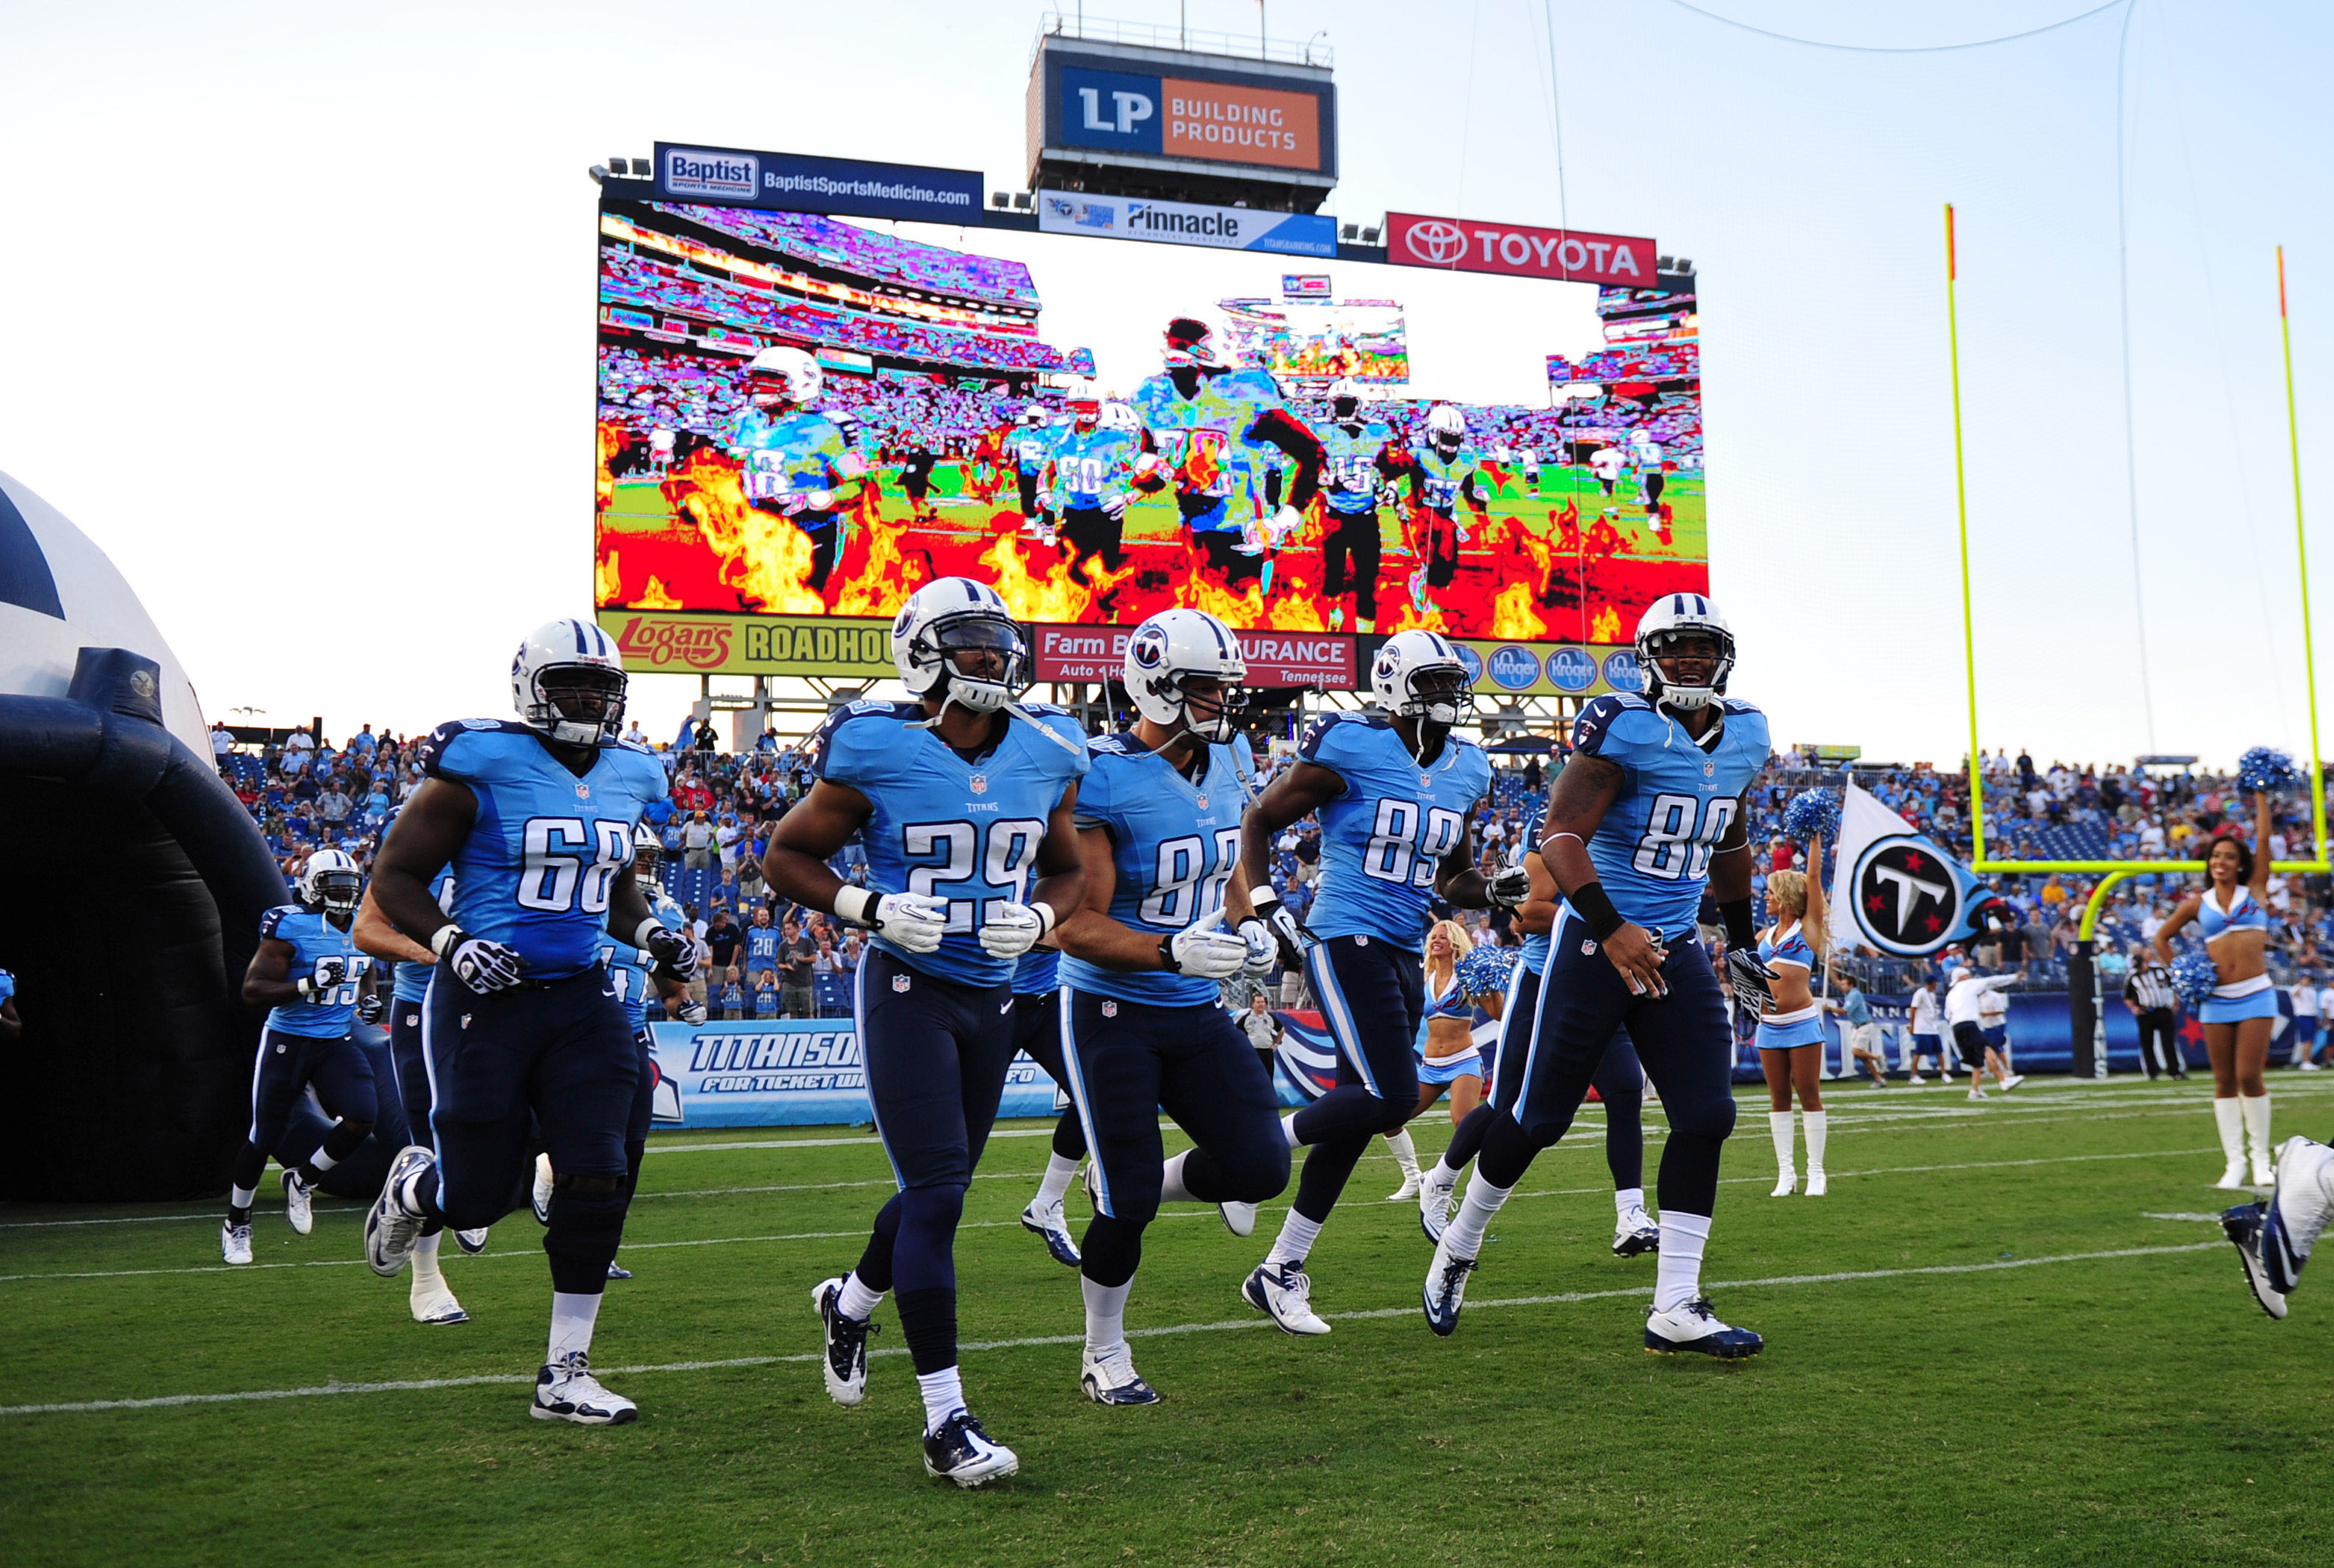 Aug 23, 2012; Nashville, TN, USA; The Tennessee Titans take the field in front of their new Jumbotron before a game against the Arizona Cardinals at LP Field. The Titans beat the Cardinals 32-27. Mandatory credit: Don McPeak-US PRESSWIRE